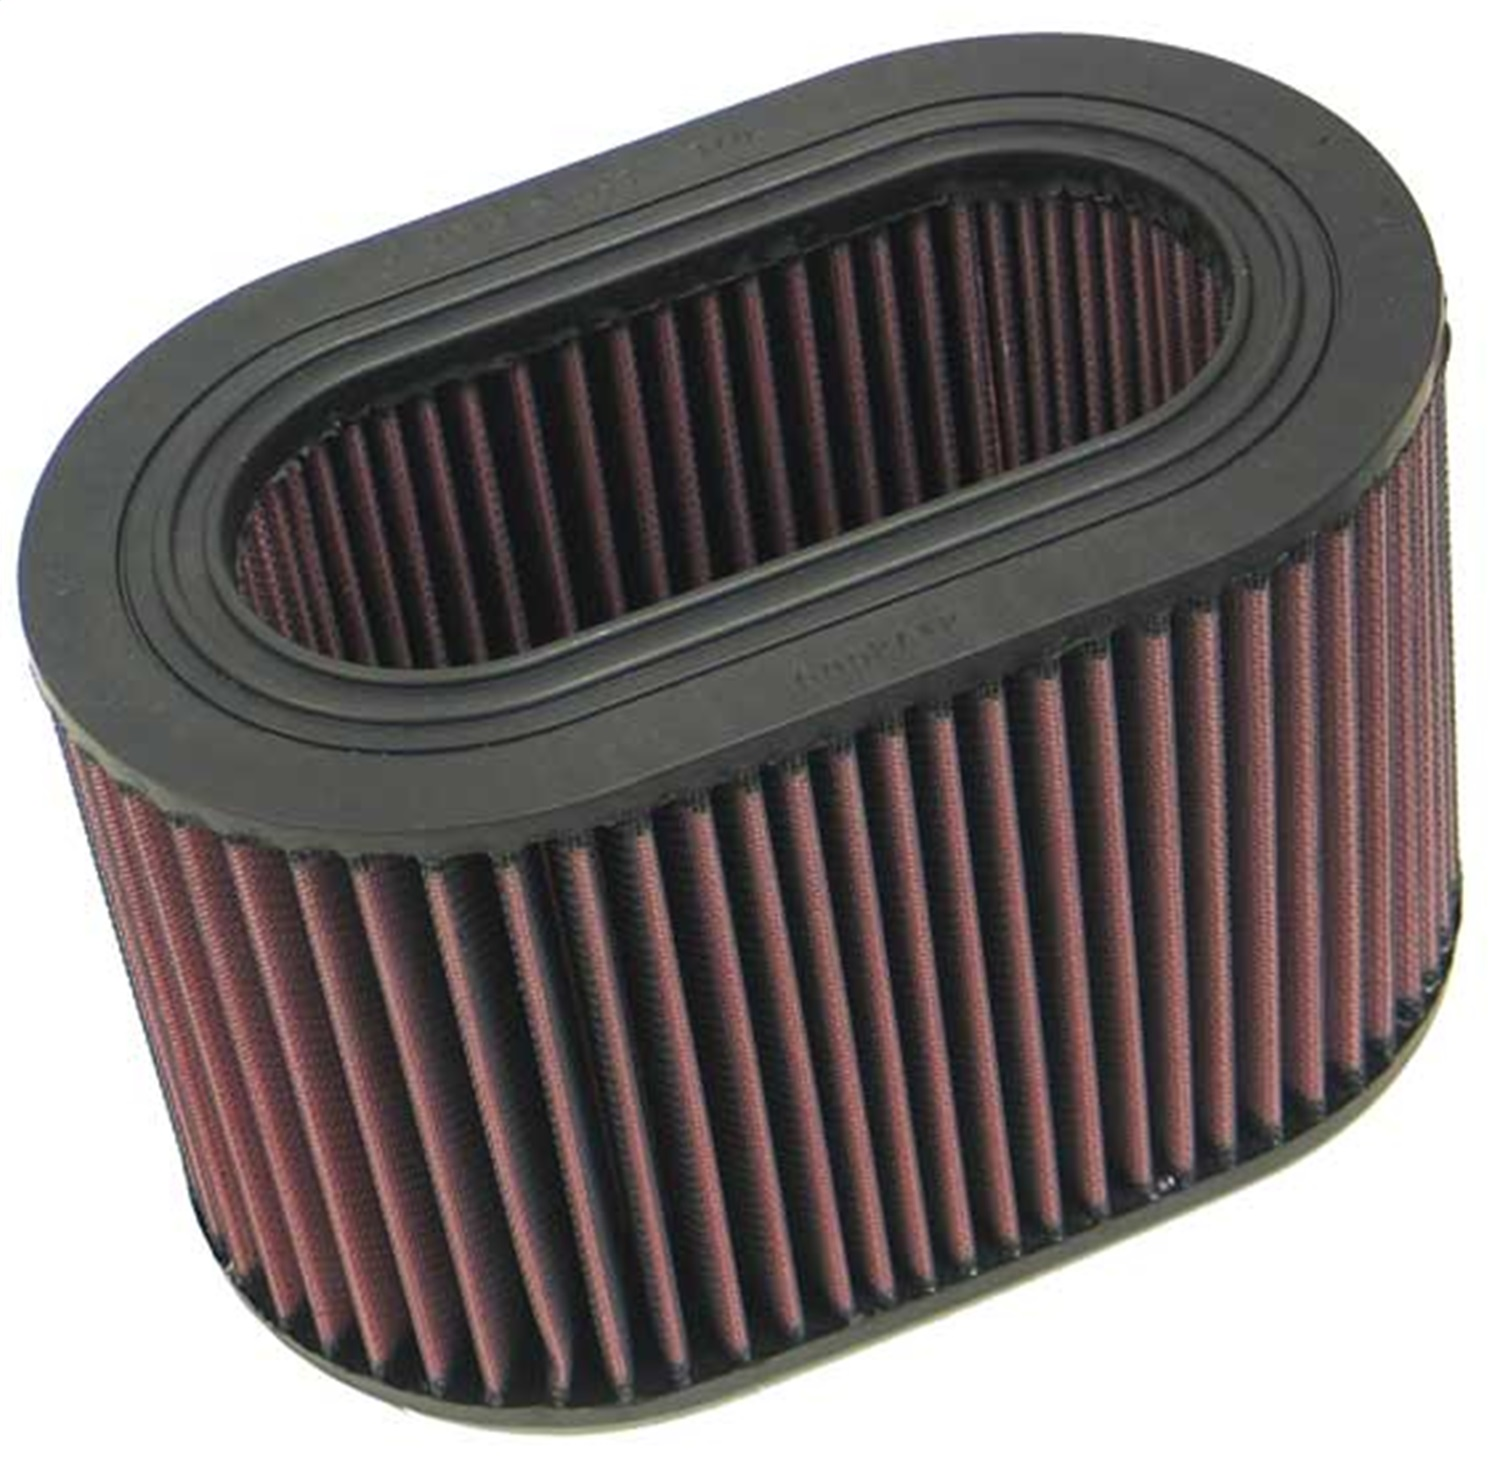 K&N Filters E-2871 Air Filter Fits 83-85 Mighty Max Power Ram 50 Ram 50 Pickup E-2871